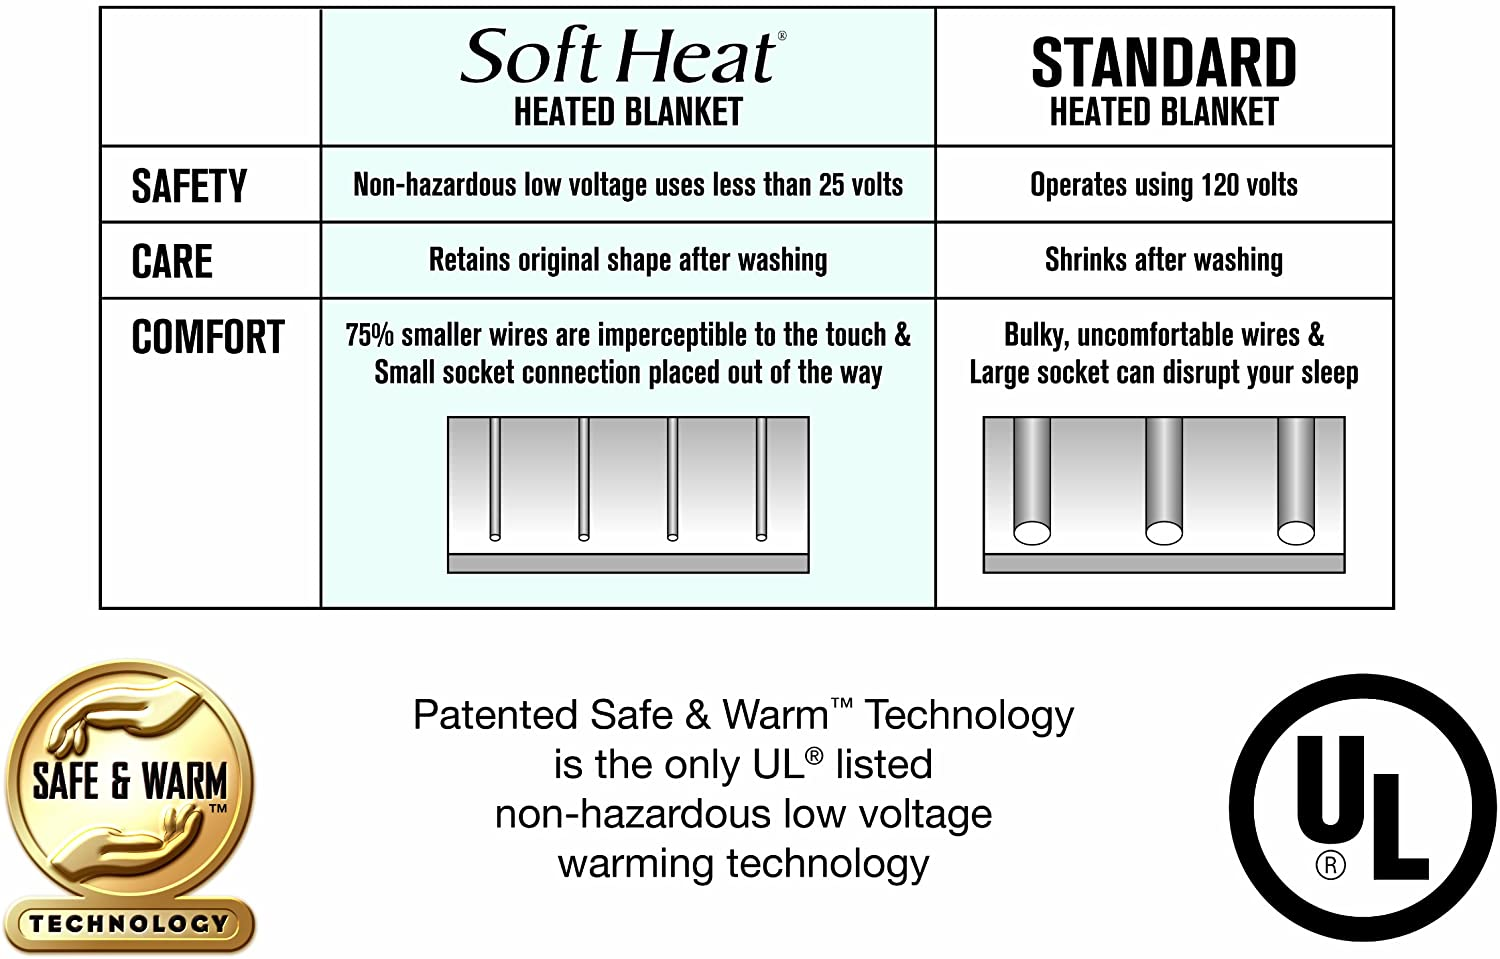 SoftHeat by Perfect Fit | Ultra Soft Plush Electric Heated Warming Blanket with Safe & Warm Low-Voltage Technology, King, Natural: Home & Kitchen